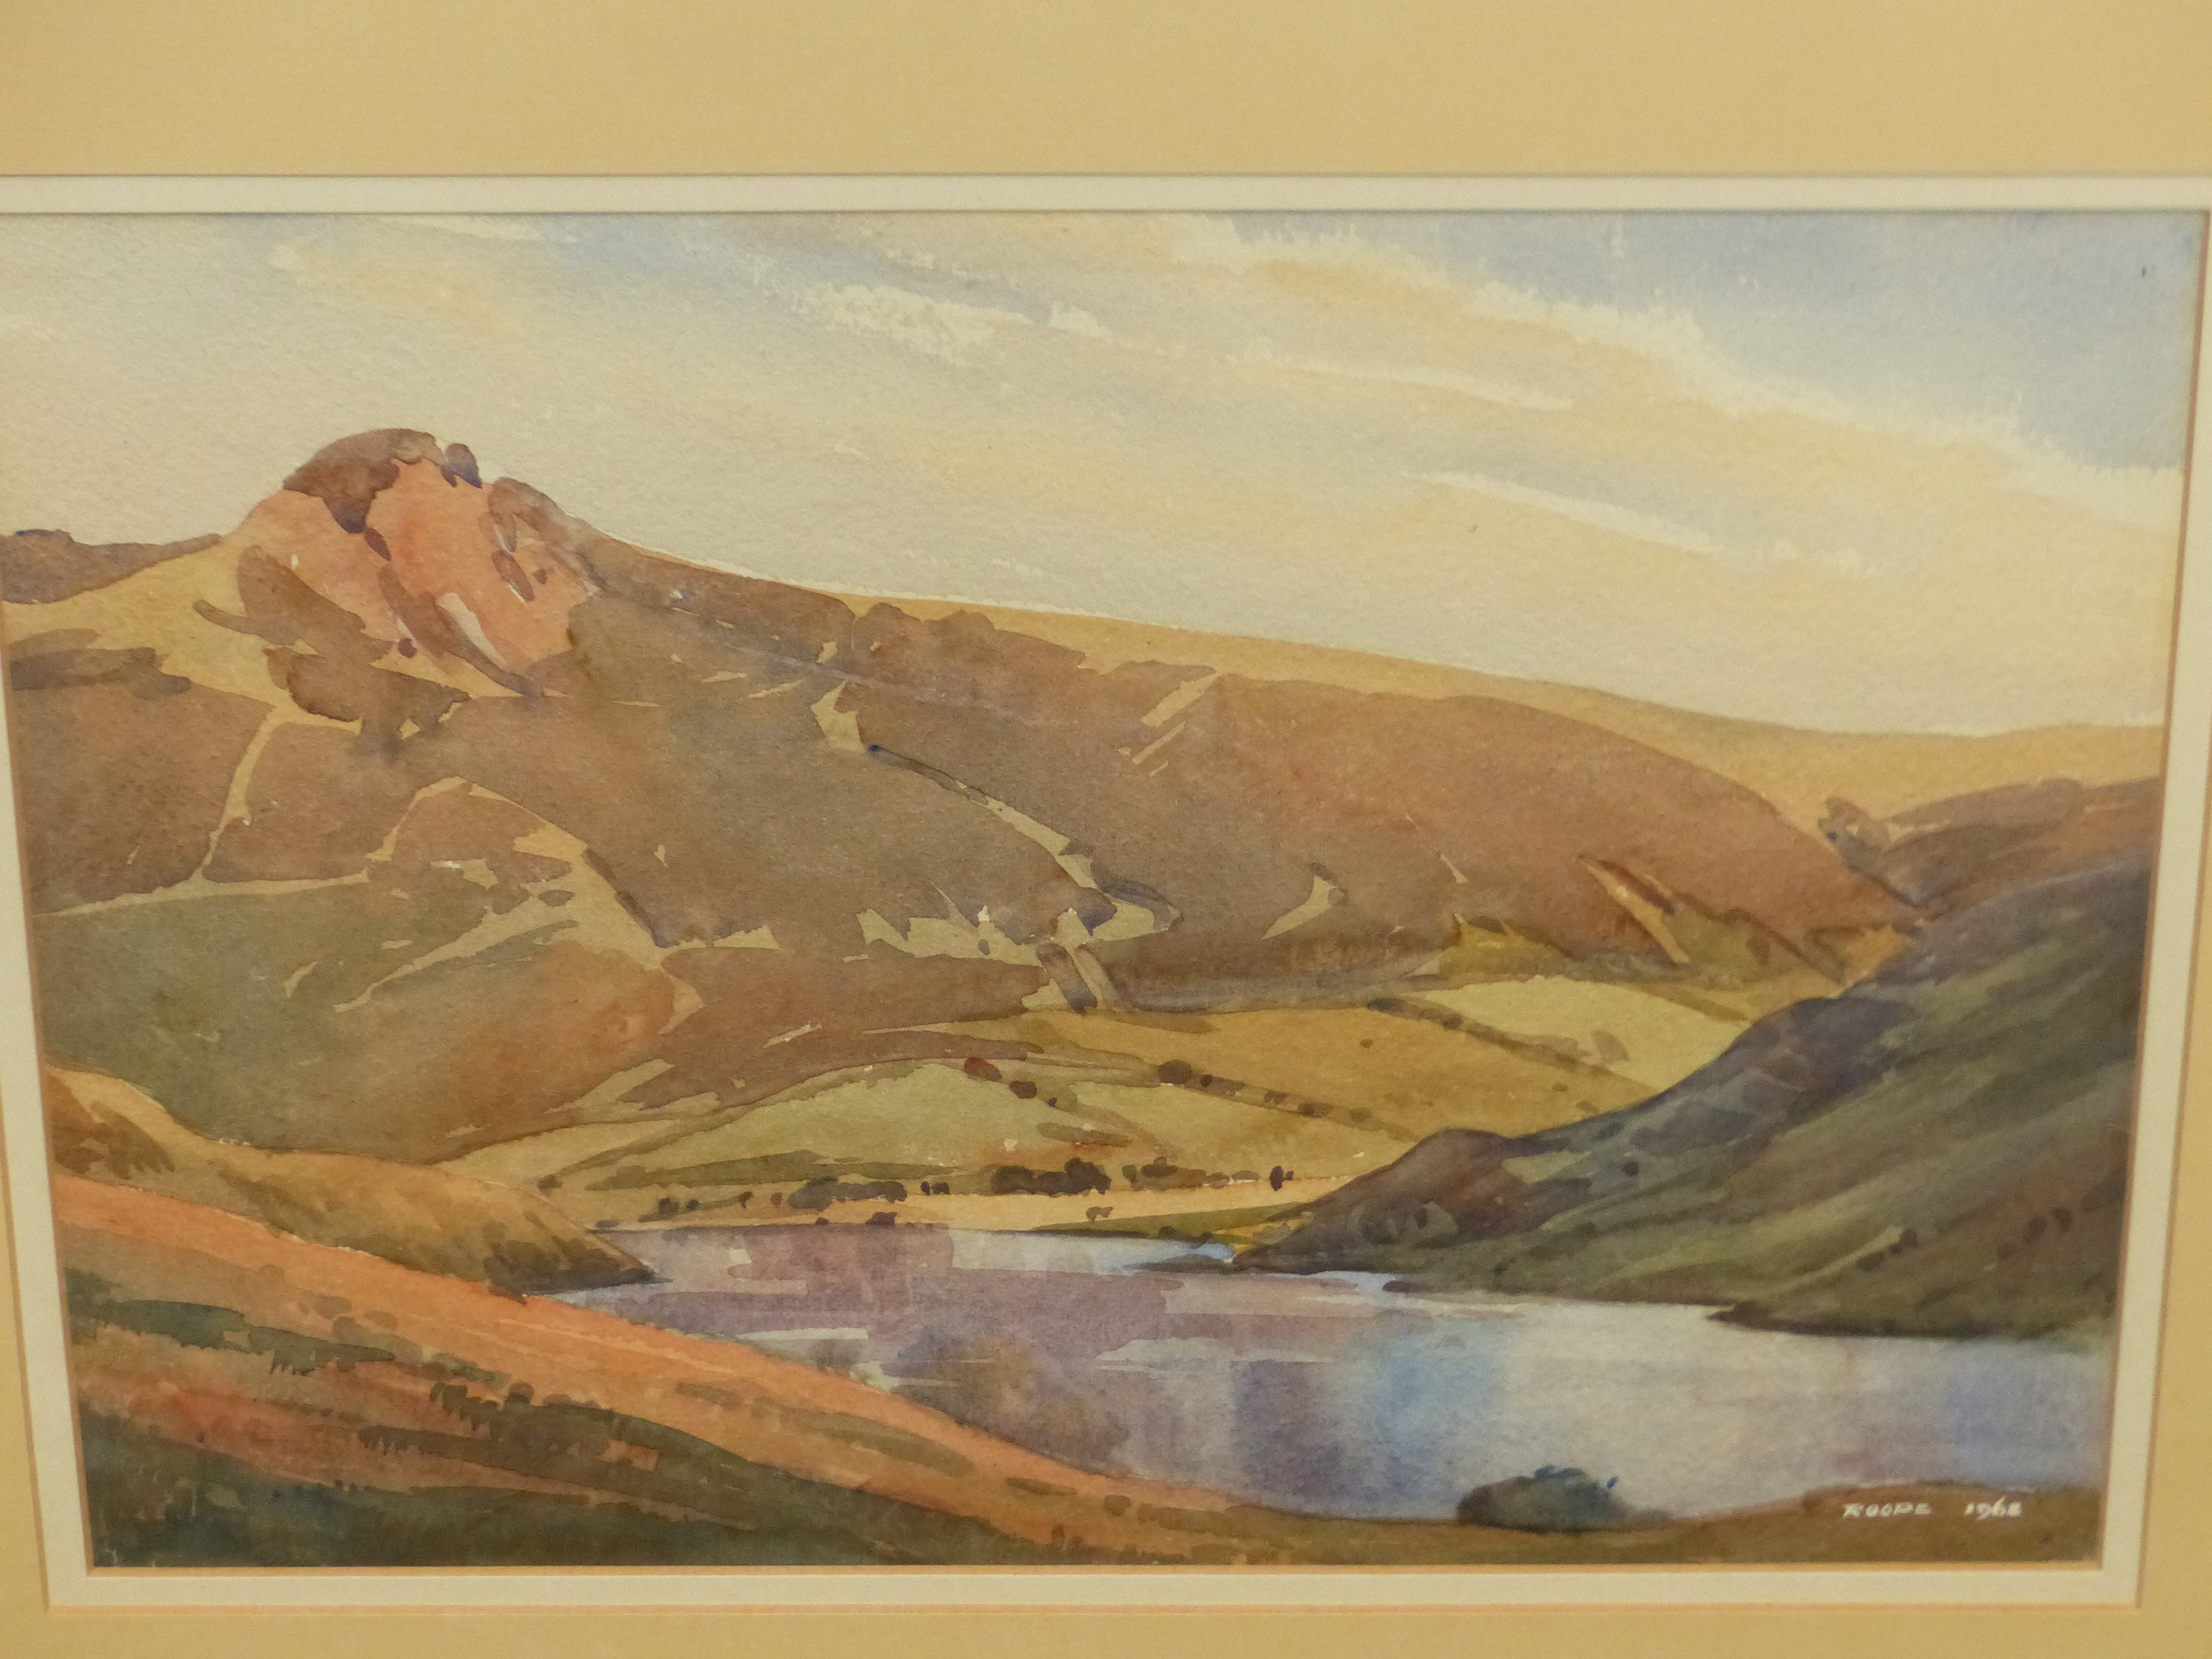 ROOPE? (20th CENTURY SCHOOL). A HIGHLAND LAKE LANDSCAPE, WATERCOLOUR, SIGNED AND DATED, 26 x 35cms.